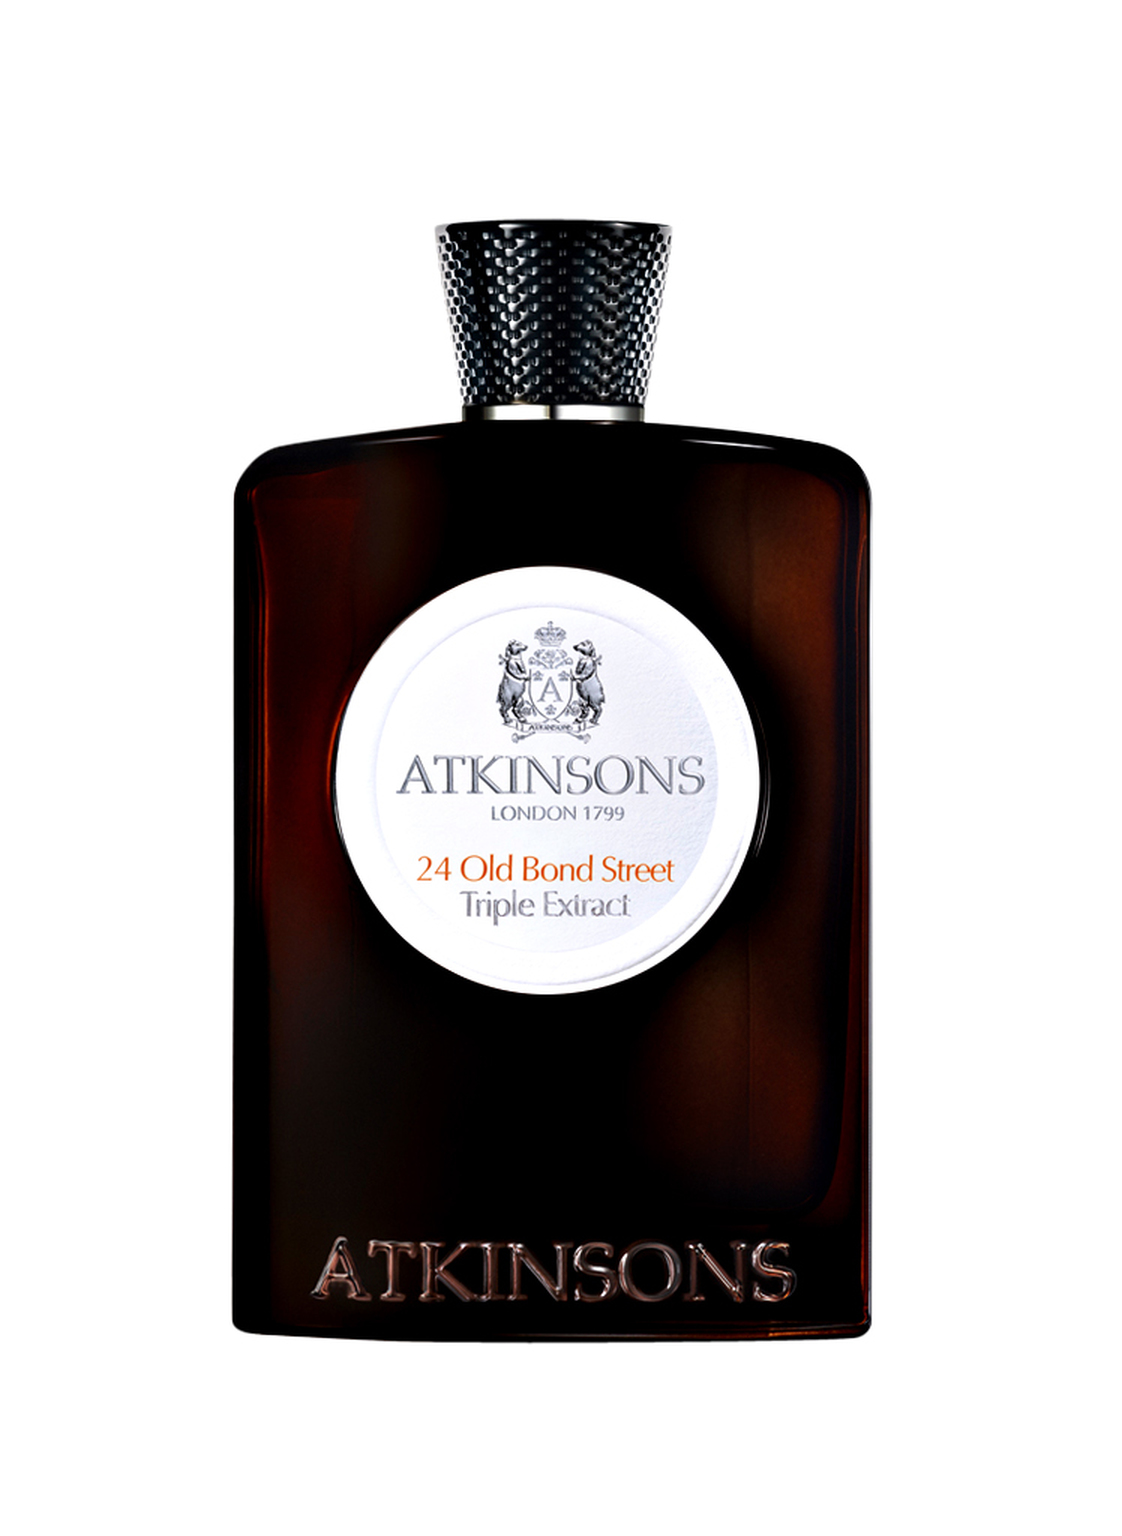 Image of Atkinsons 24 Old Bond Street Triple Extract Eau de Cologne 100 ml